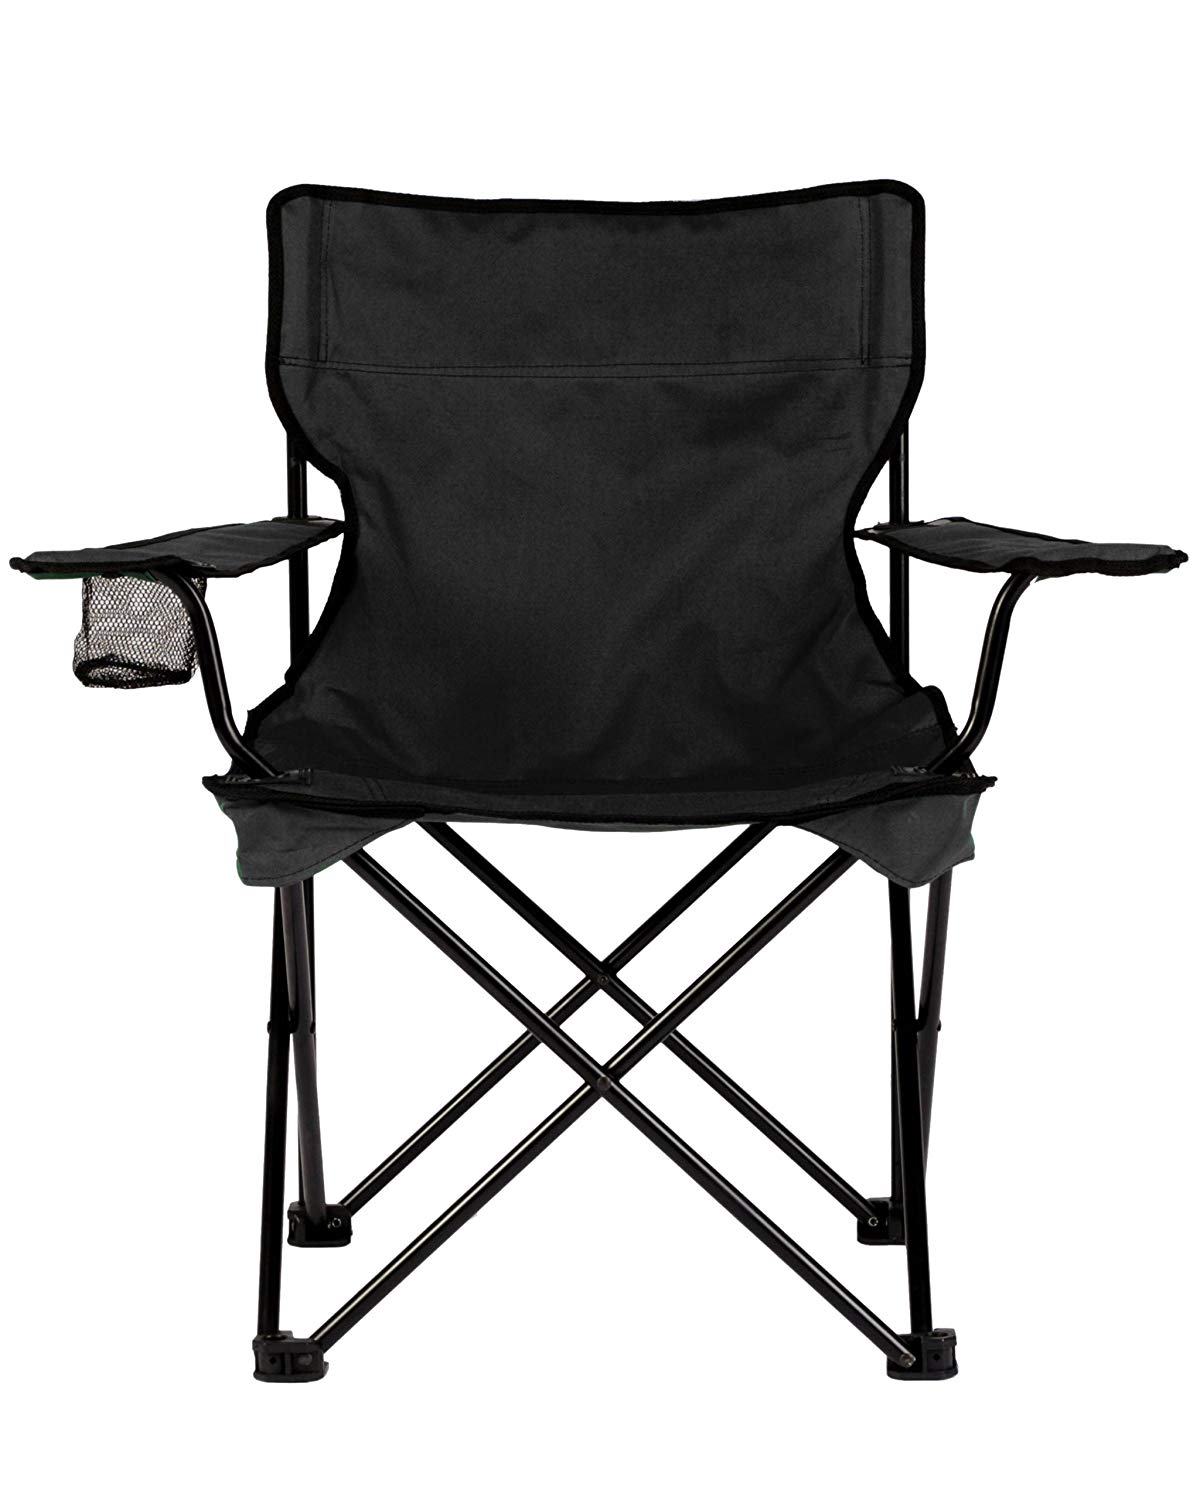 camp chairs amazon.com : travelchair c-series rider chair, black : camping chairs : FEVITOD